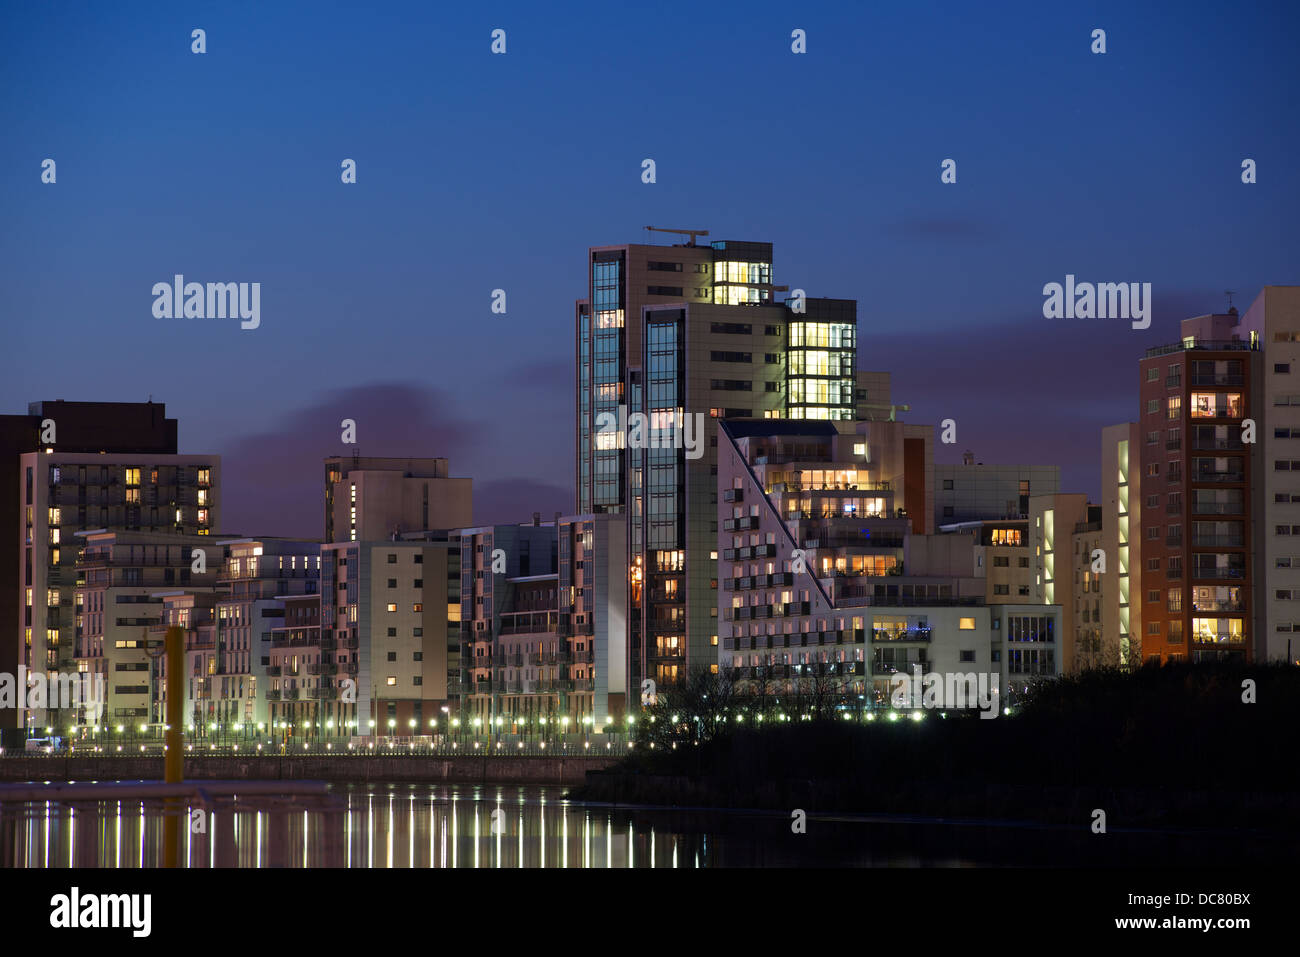 Glasgow Harbour Apartment Development at Dusk, Glasgow - Stock Image